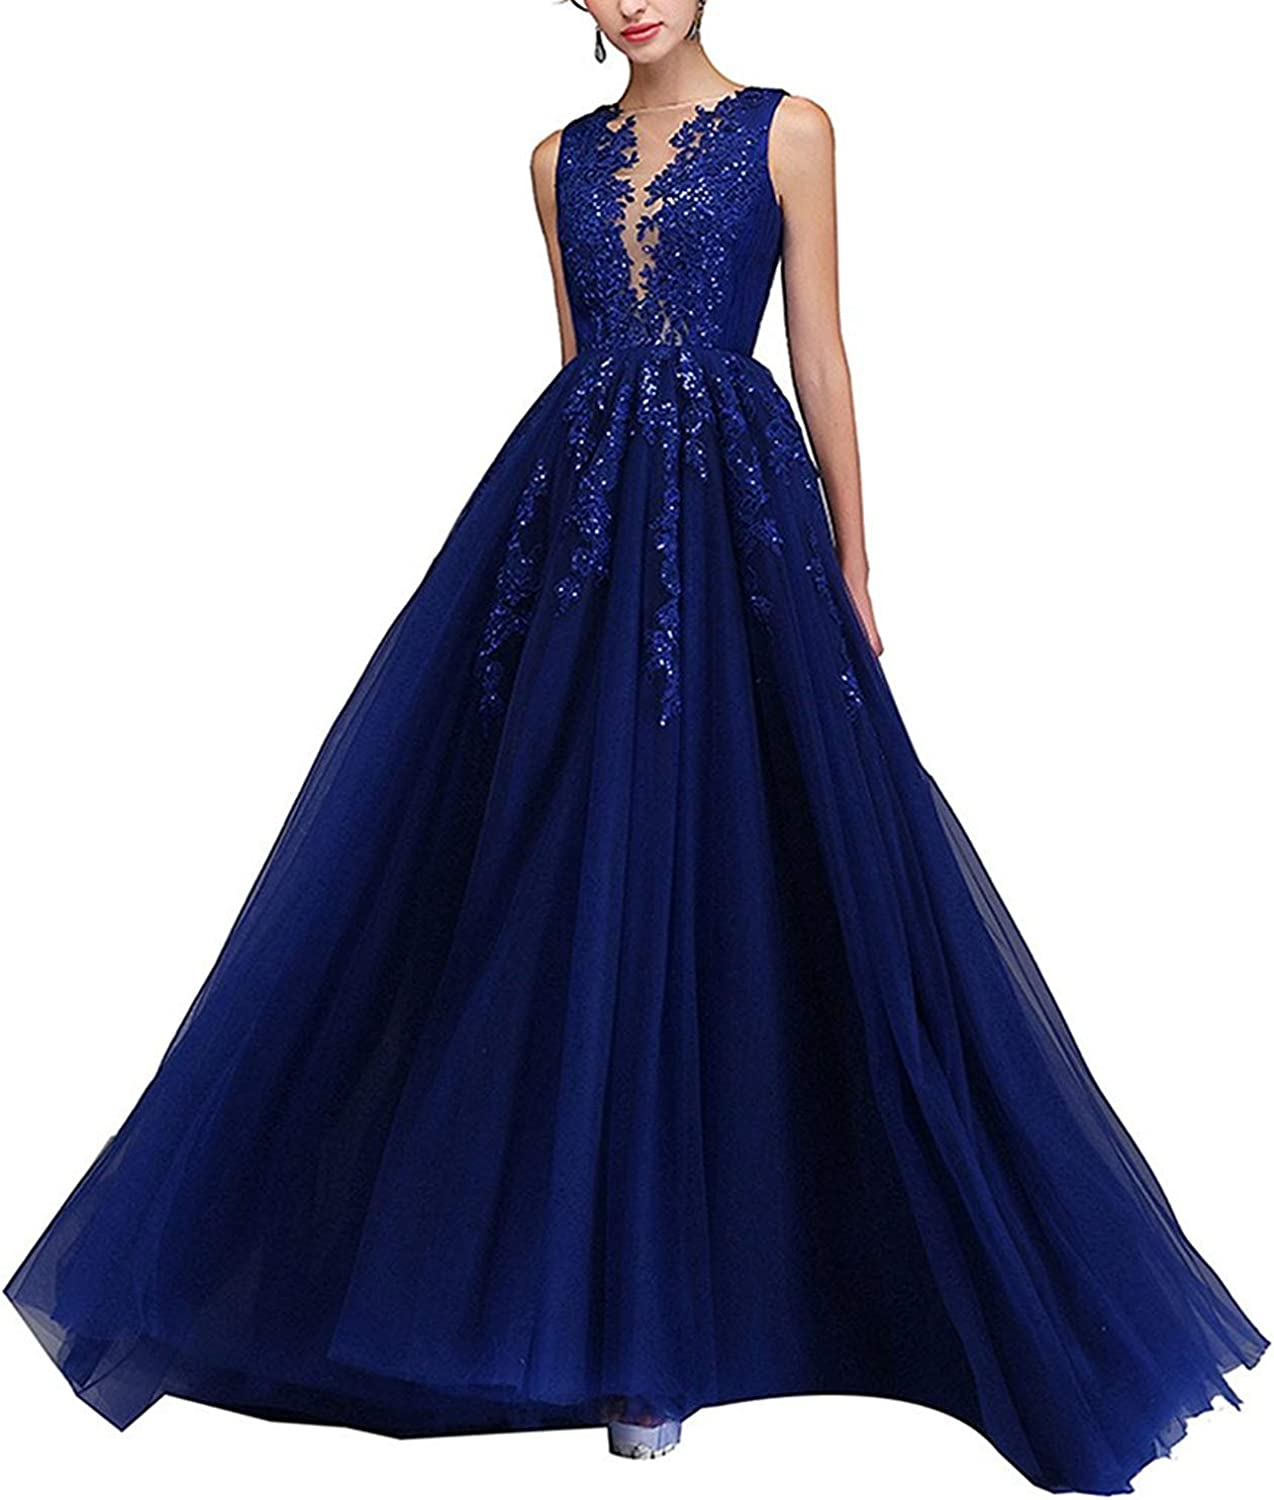 PearlBridal Illusion Neck Lace Appliques Long Prom Dresses Beaded Tulle Evening Dress for Women Side Slit